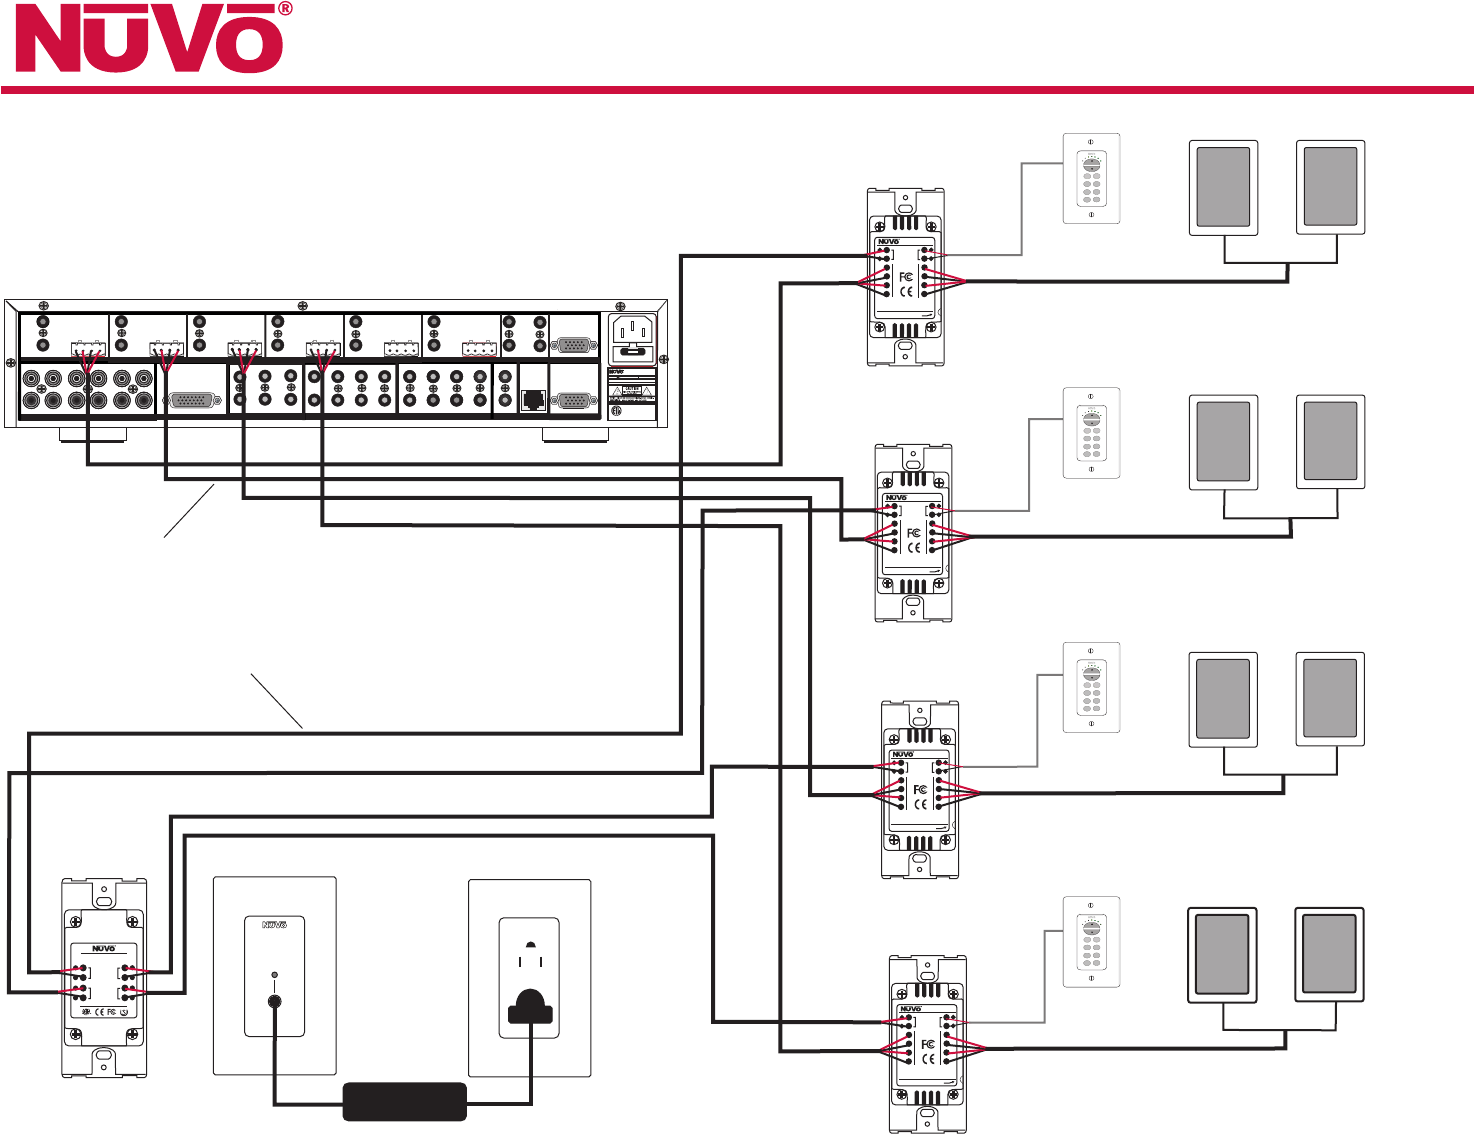 hight resolution of nuvo lsa40pds switch user manual